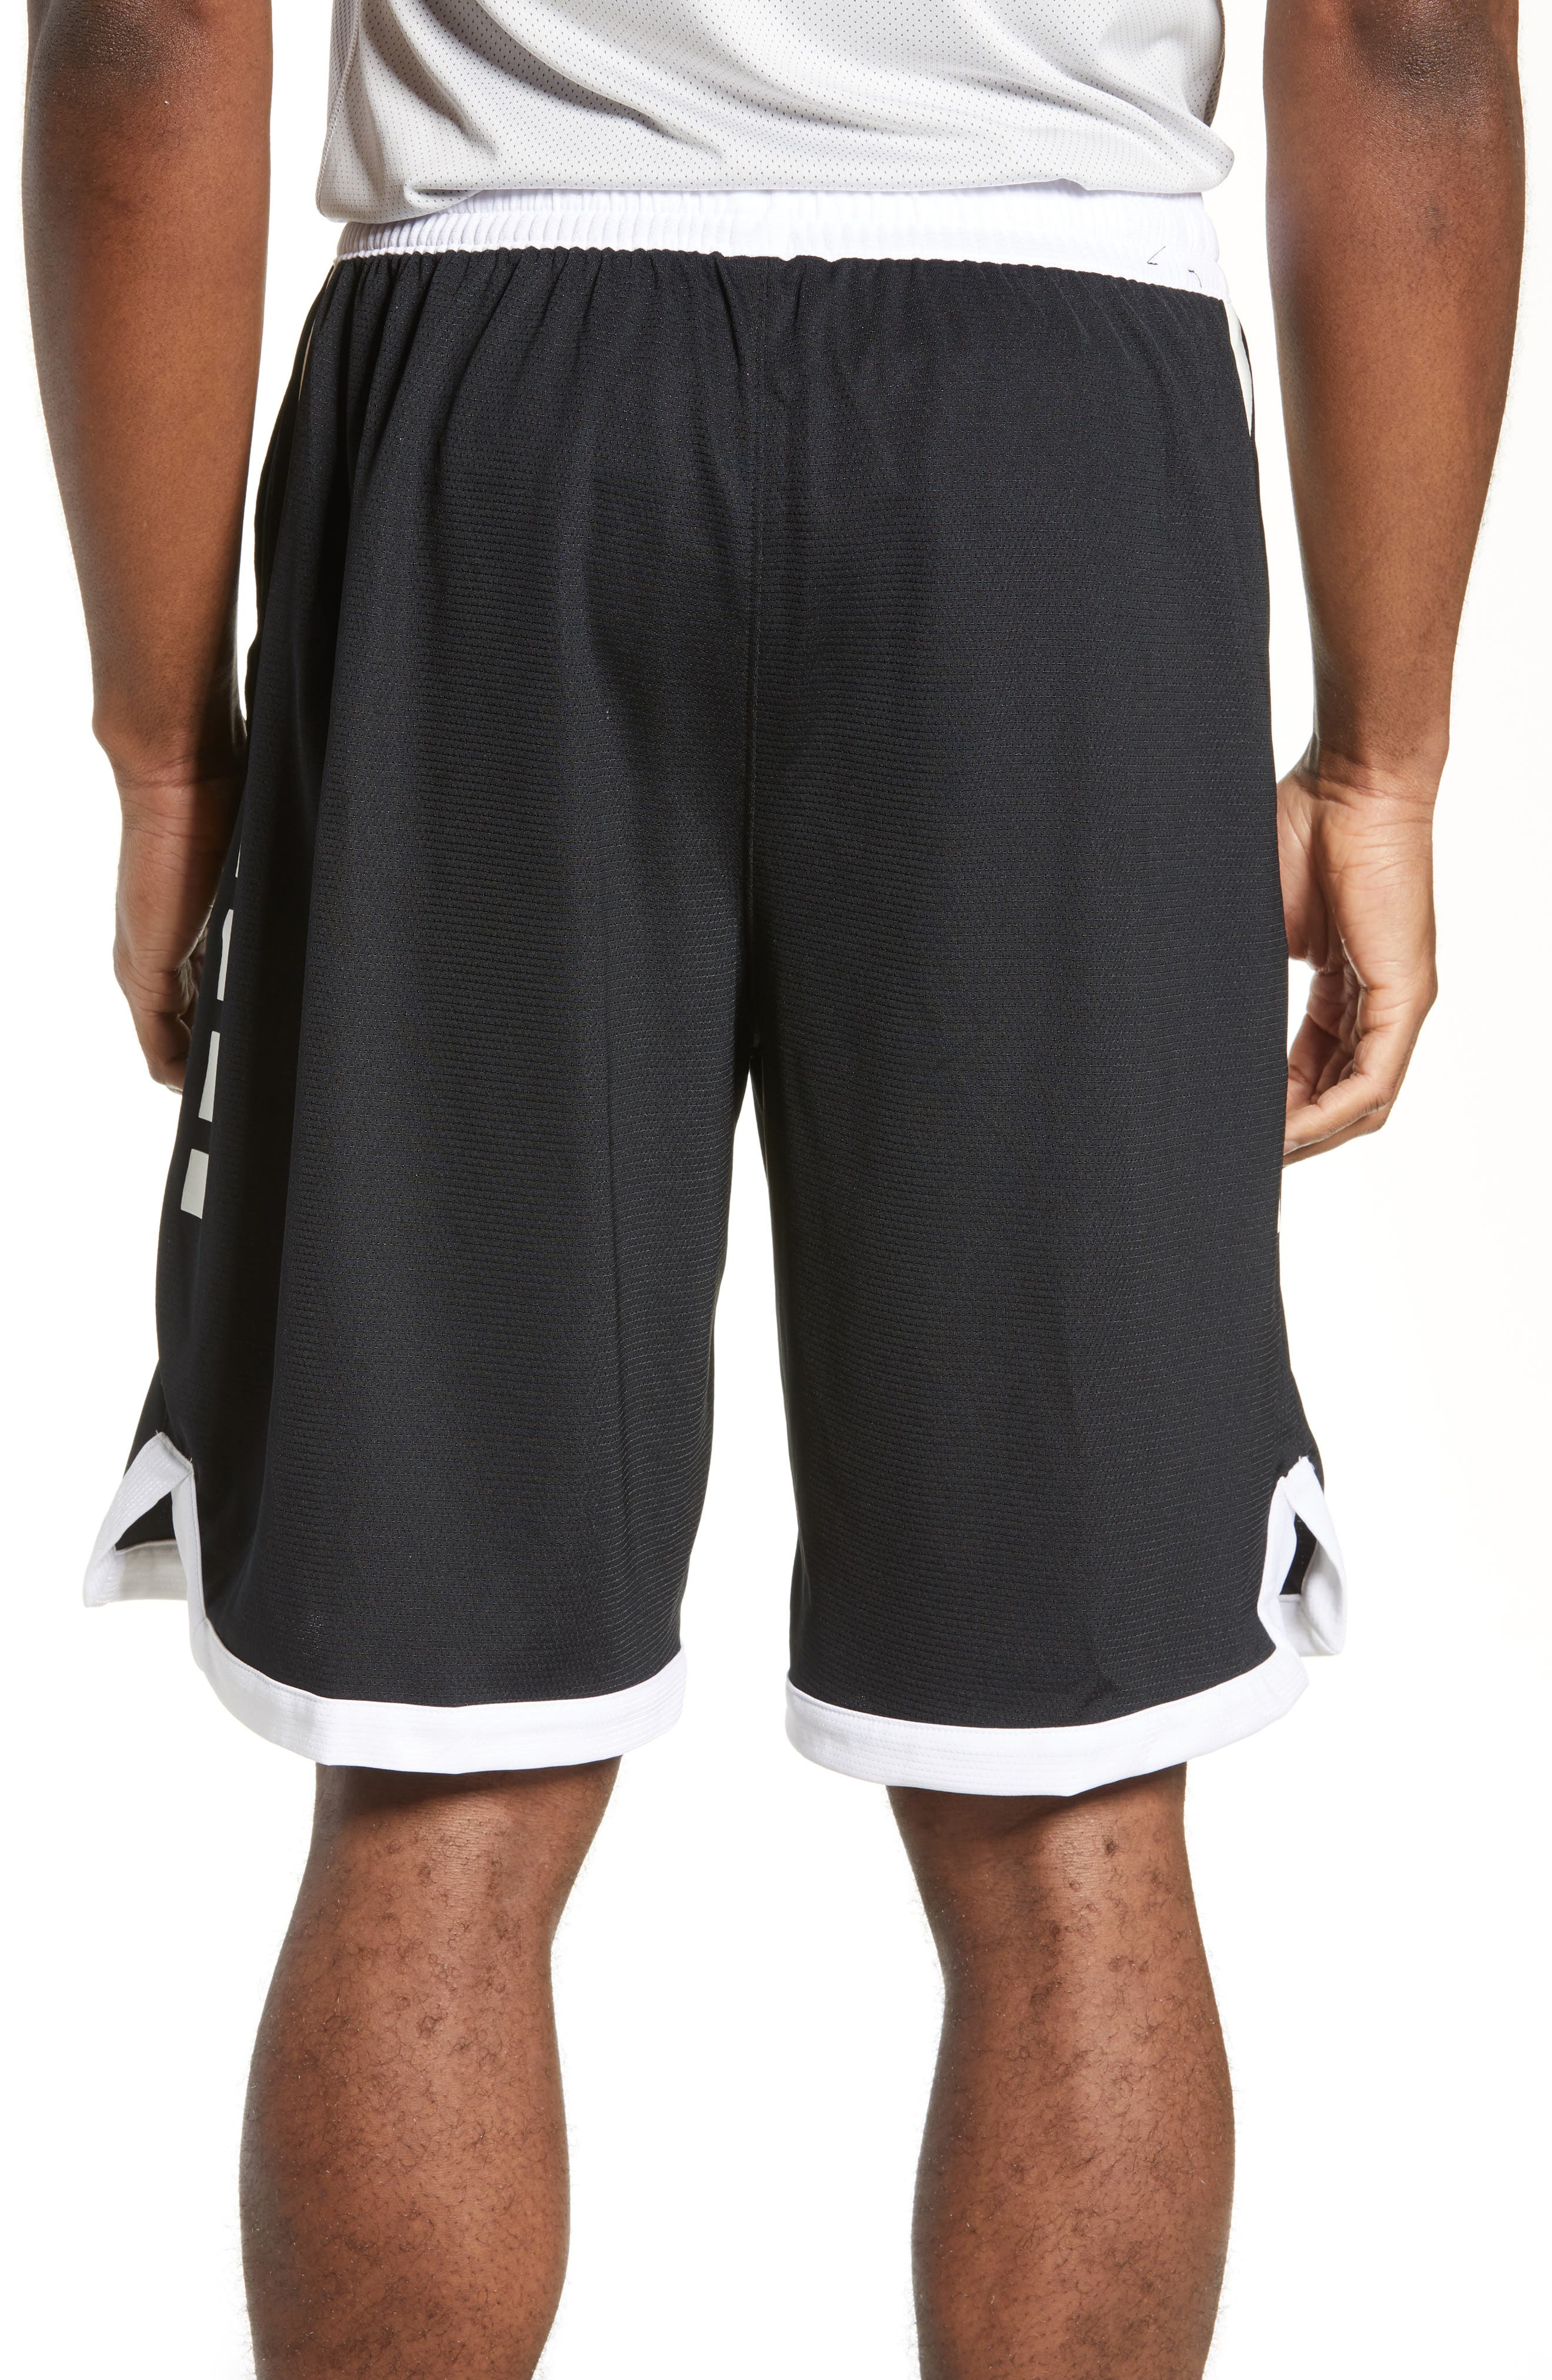 NIKE,                             Dry Elite Stripe Basketball Shorts,                             Alternate thumbnail 2, color,                             BLACK/ WHITE/ WHITE/ WHITE